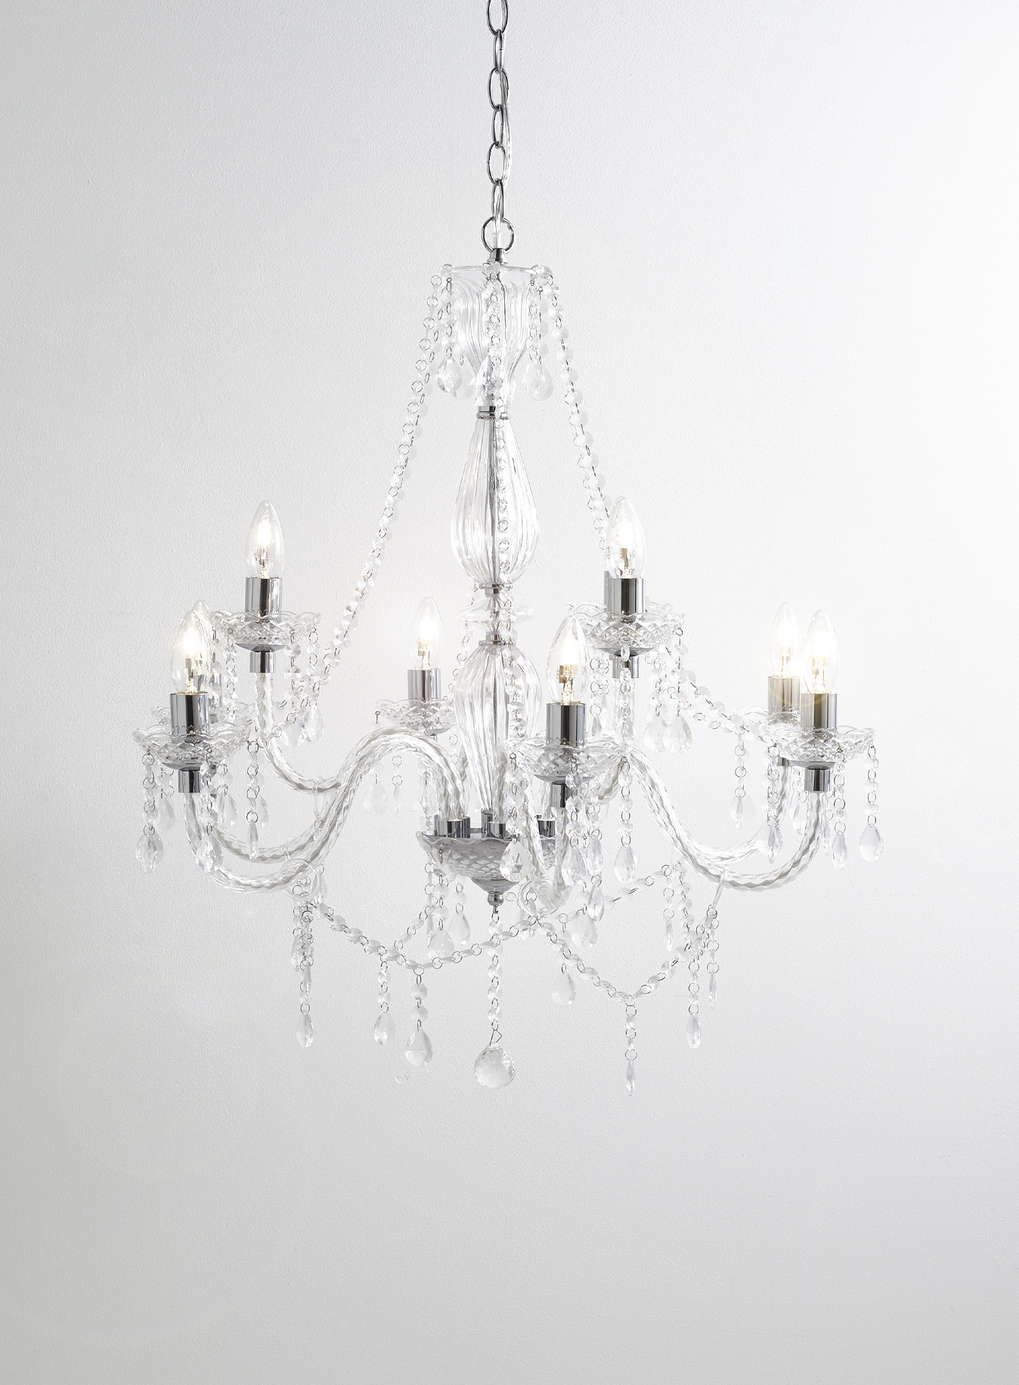 92+ Dining Room Lighting Bhs - Clear Glass Pendant Light Shade ...